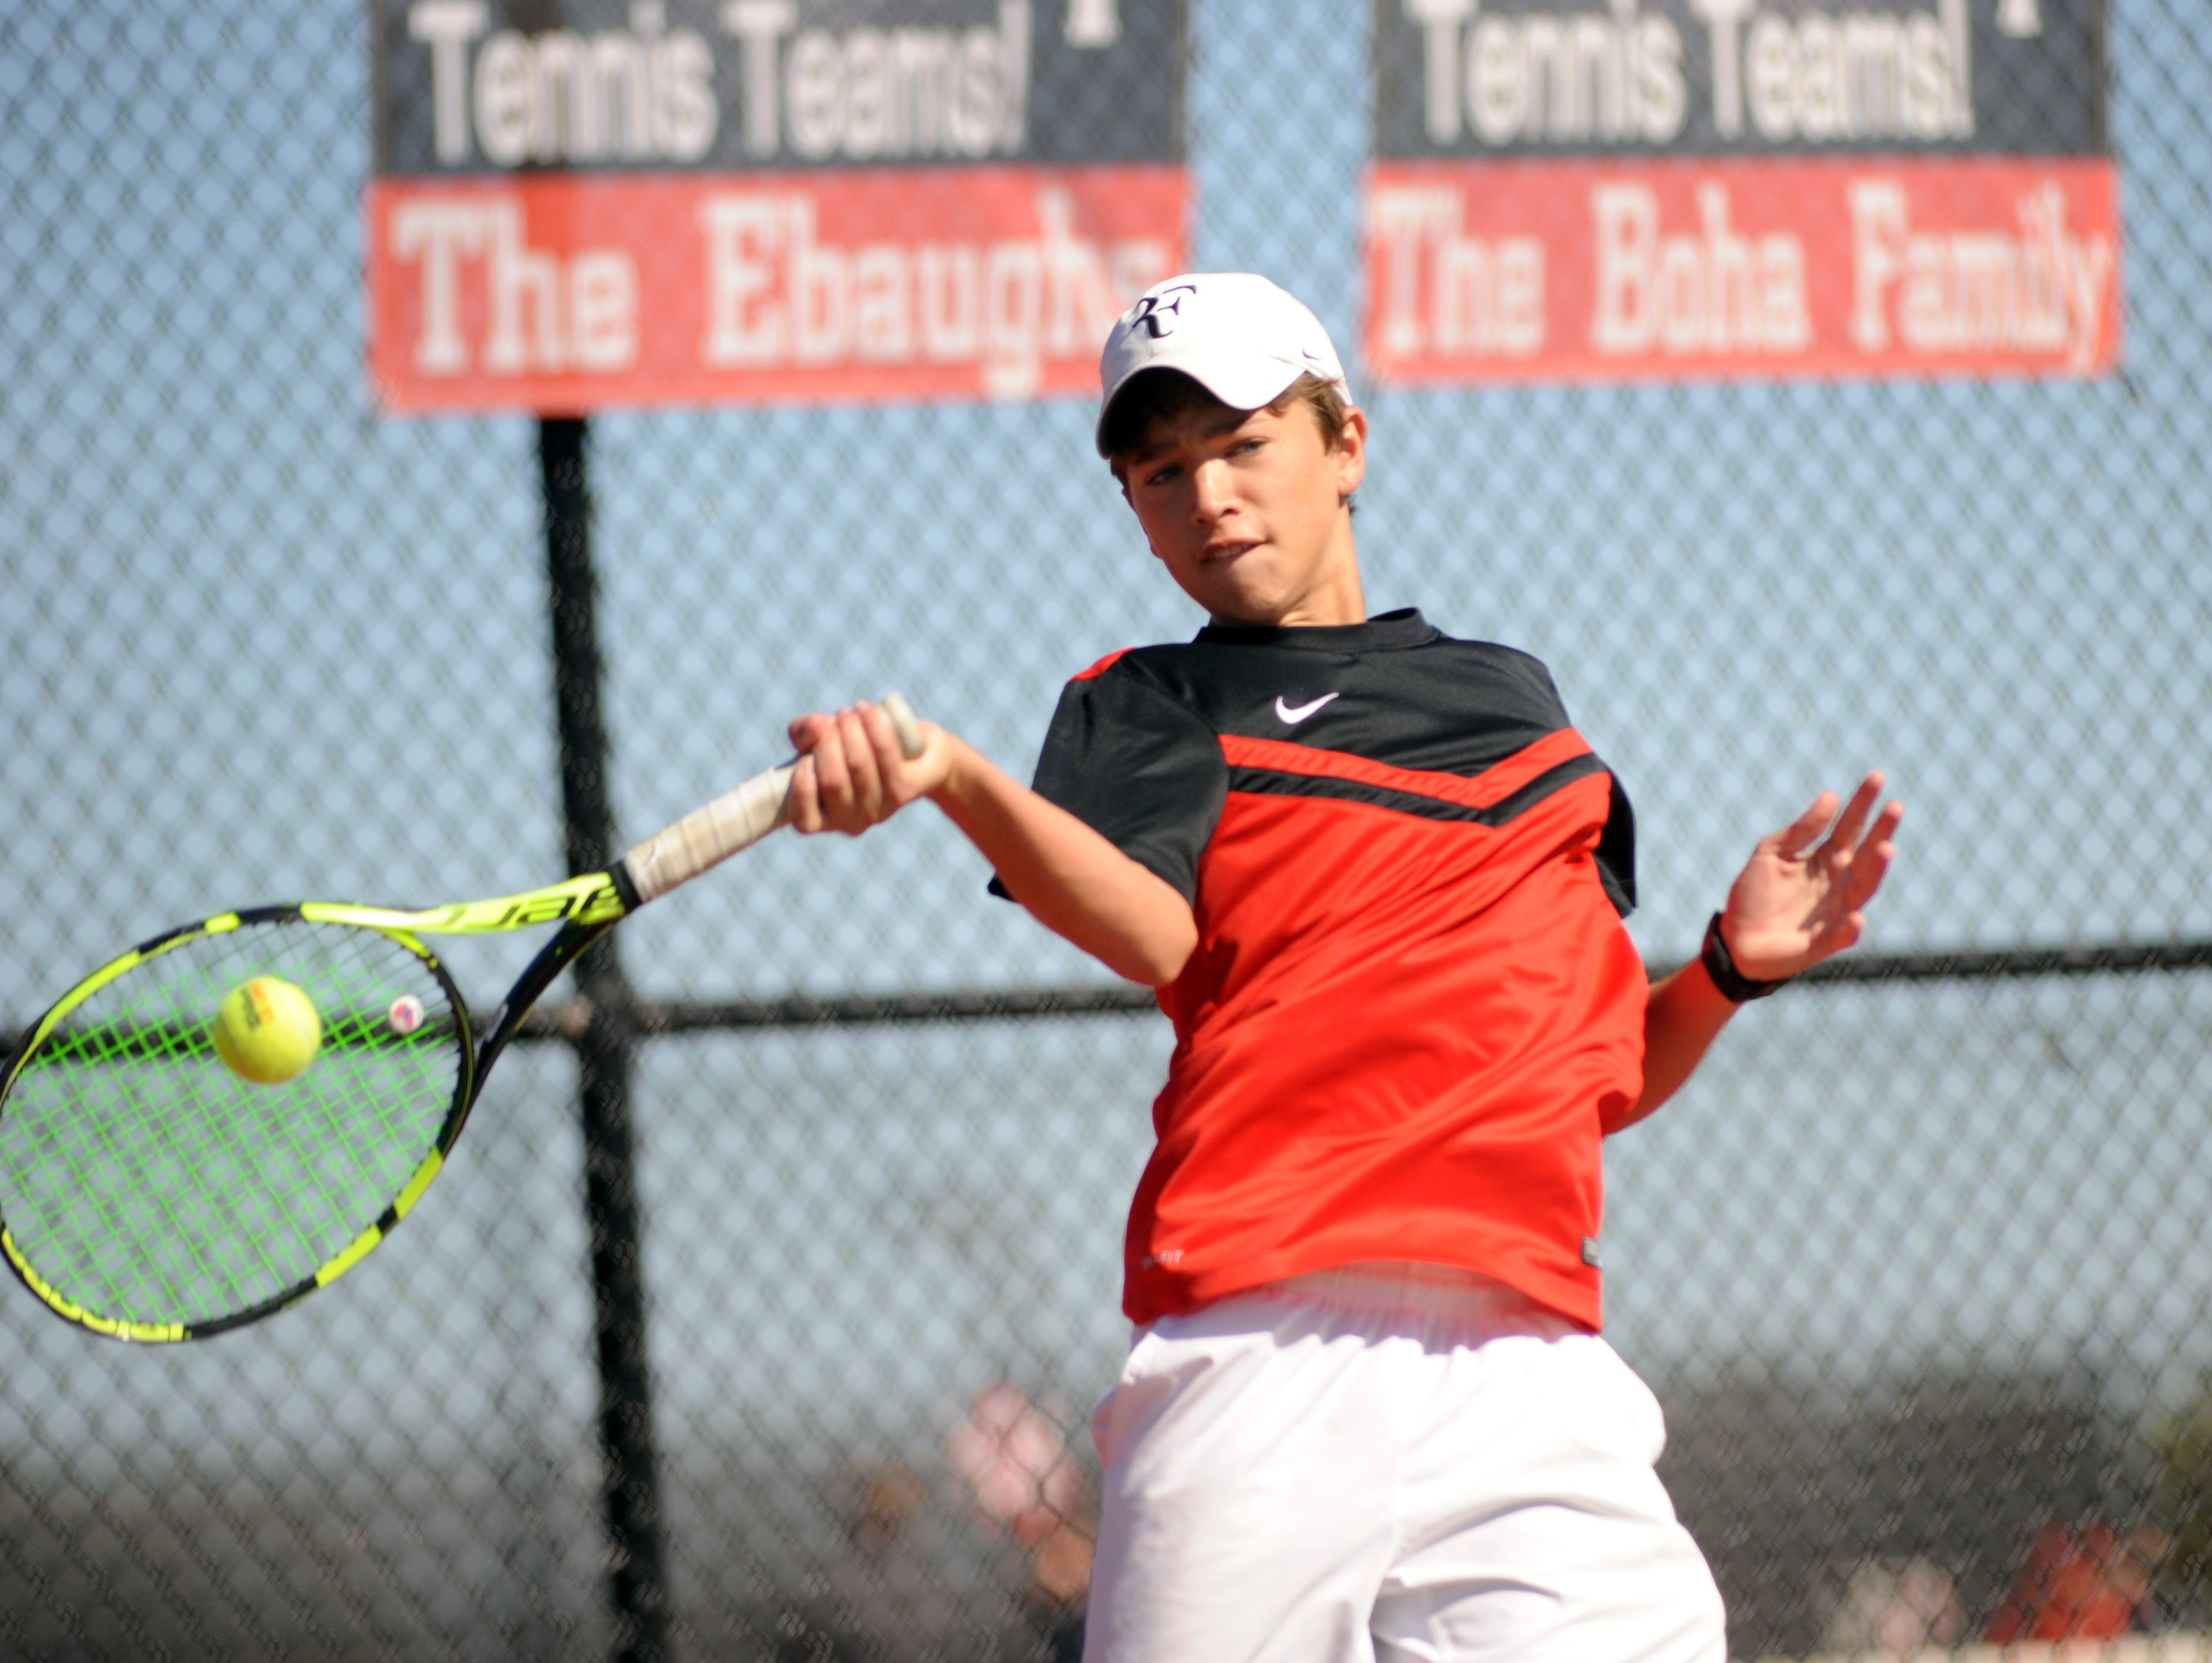 Park Tudor topped Franklin in semistate action Saturday afternoon to advance to yet another state finals. Here Aidan Harris competes against Franklin's Noah Roberts.